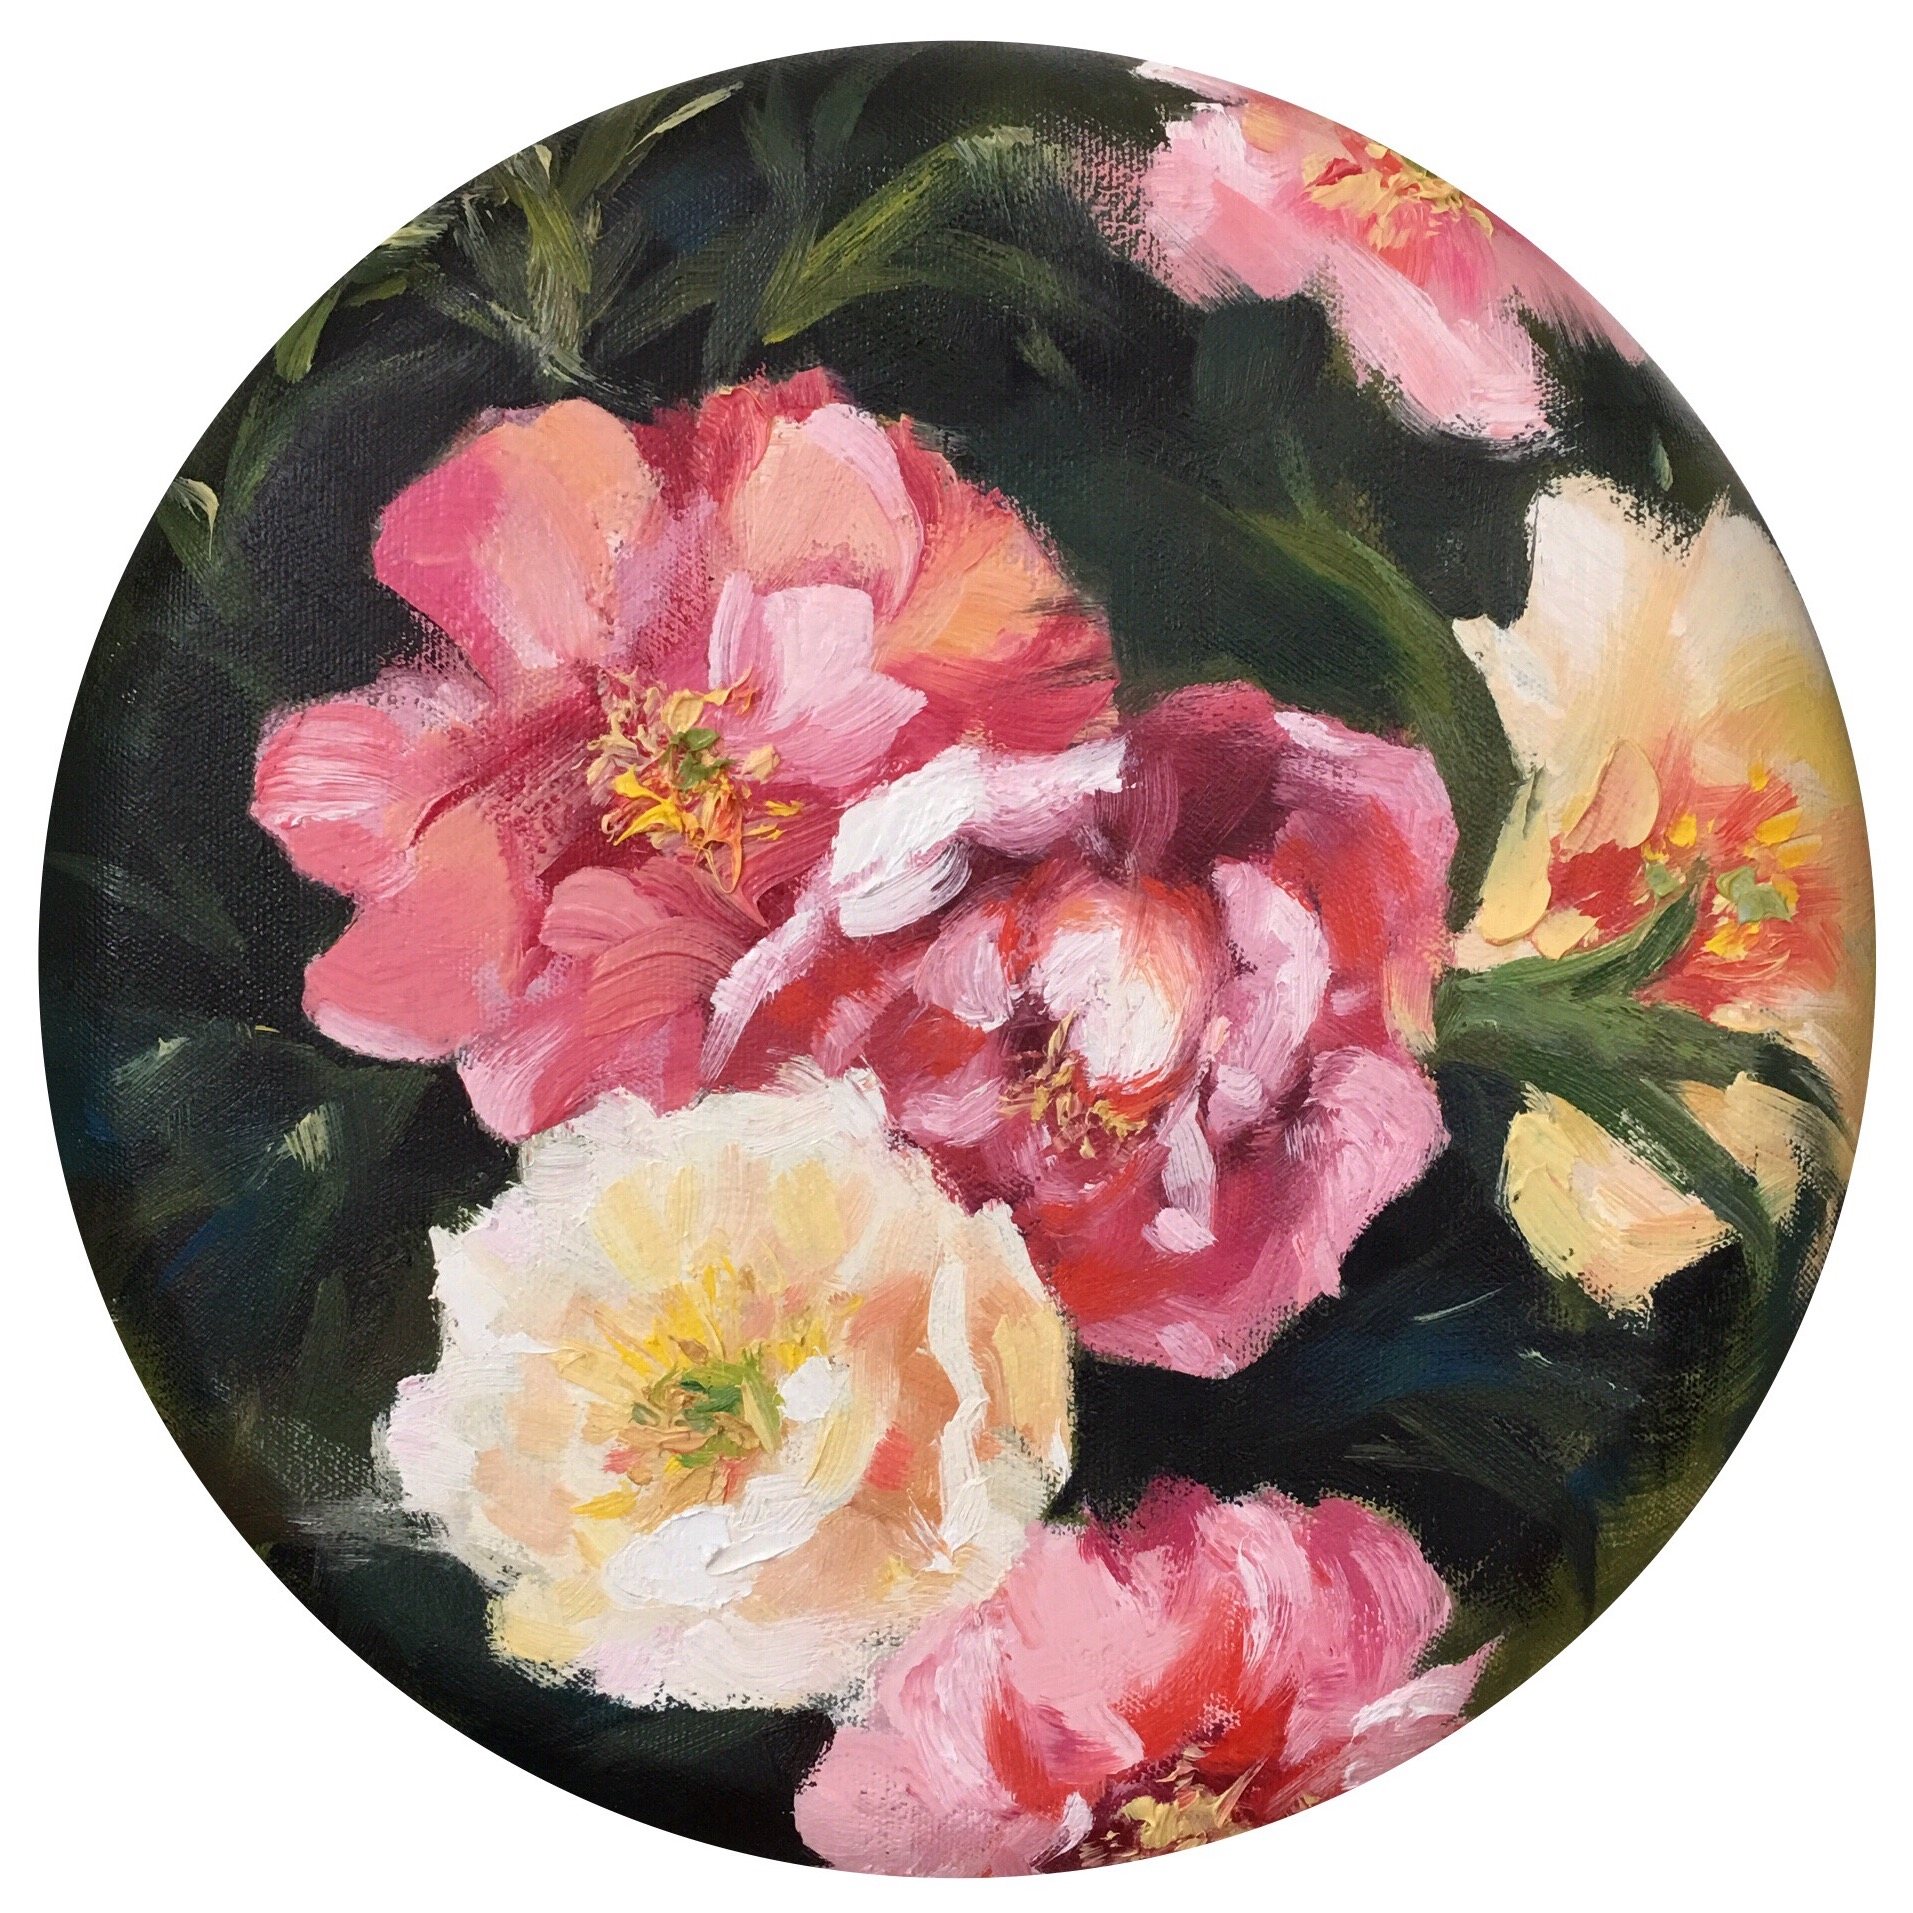 "Aroma, 12"" in diameter, oil on canvas, 2015"